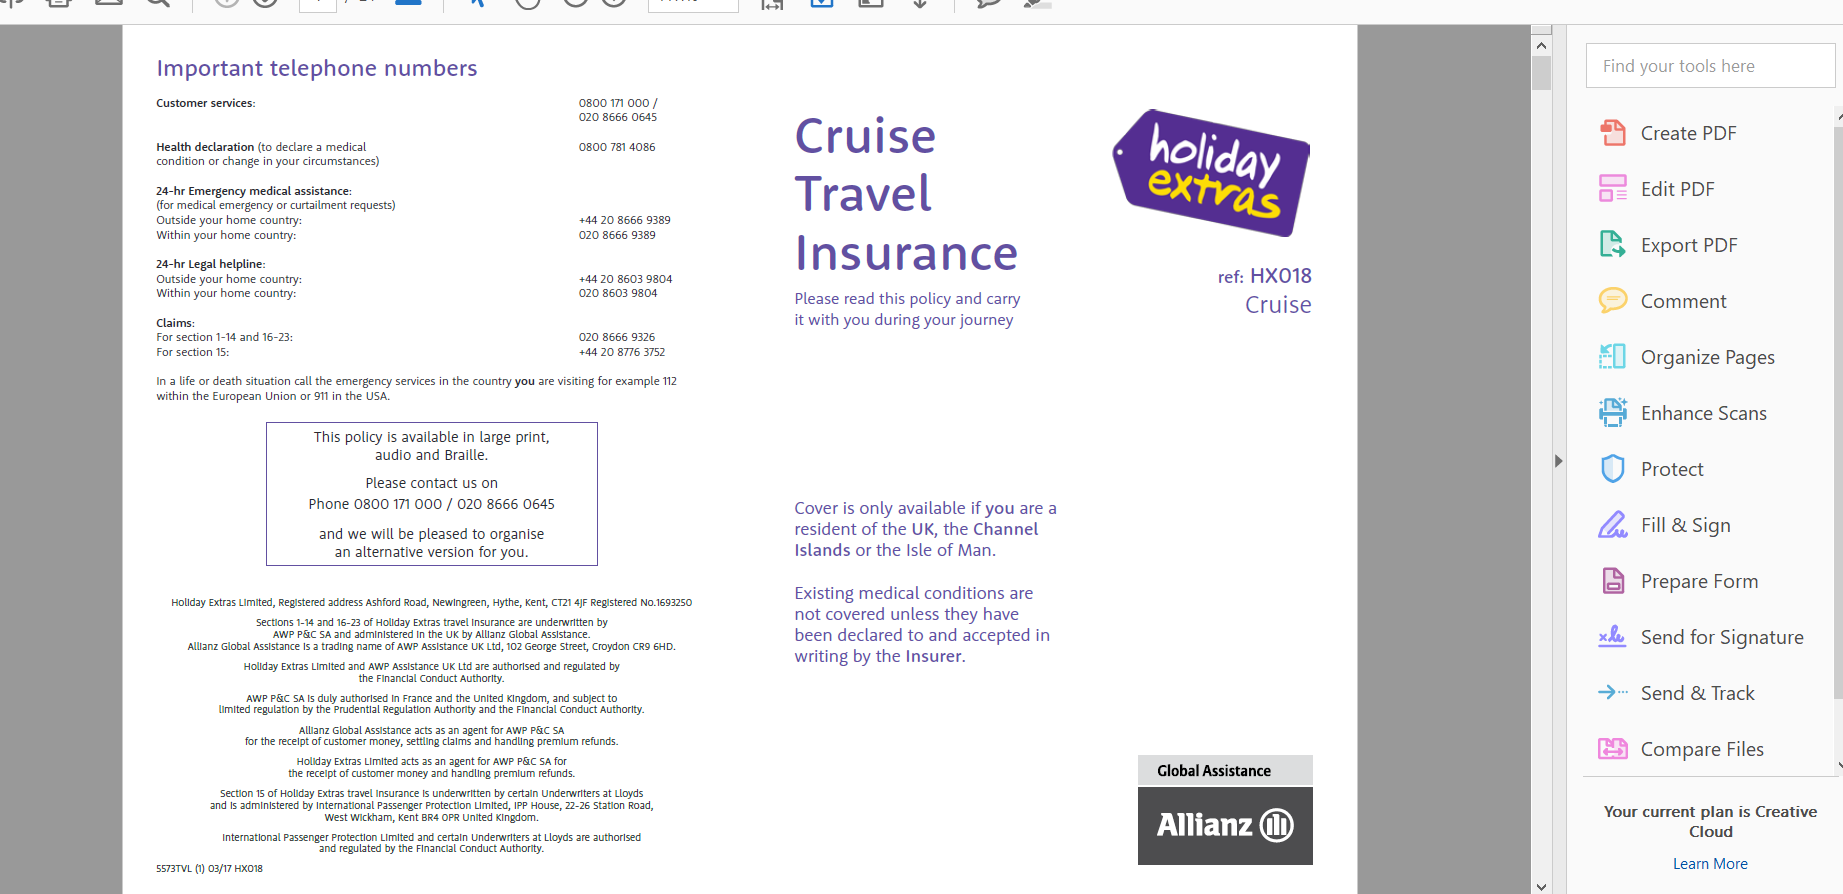 image-11-pocruises-travel-insurance-policy-document | AardvarkCompare.com